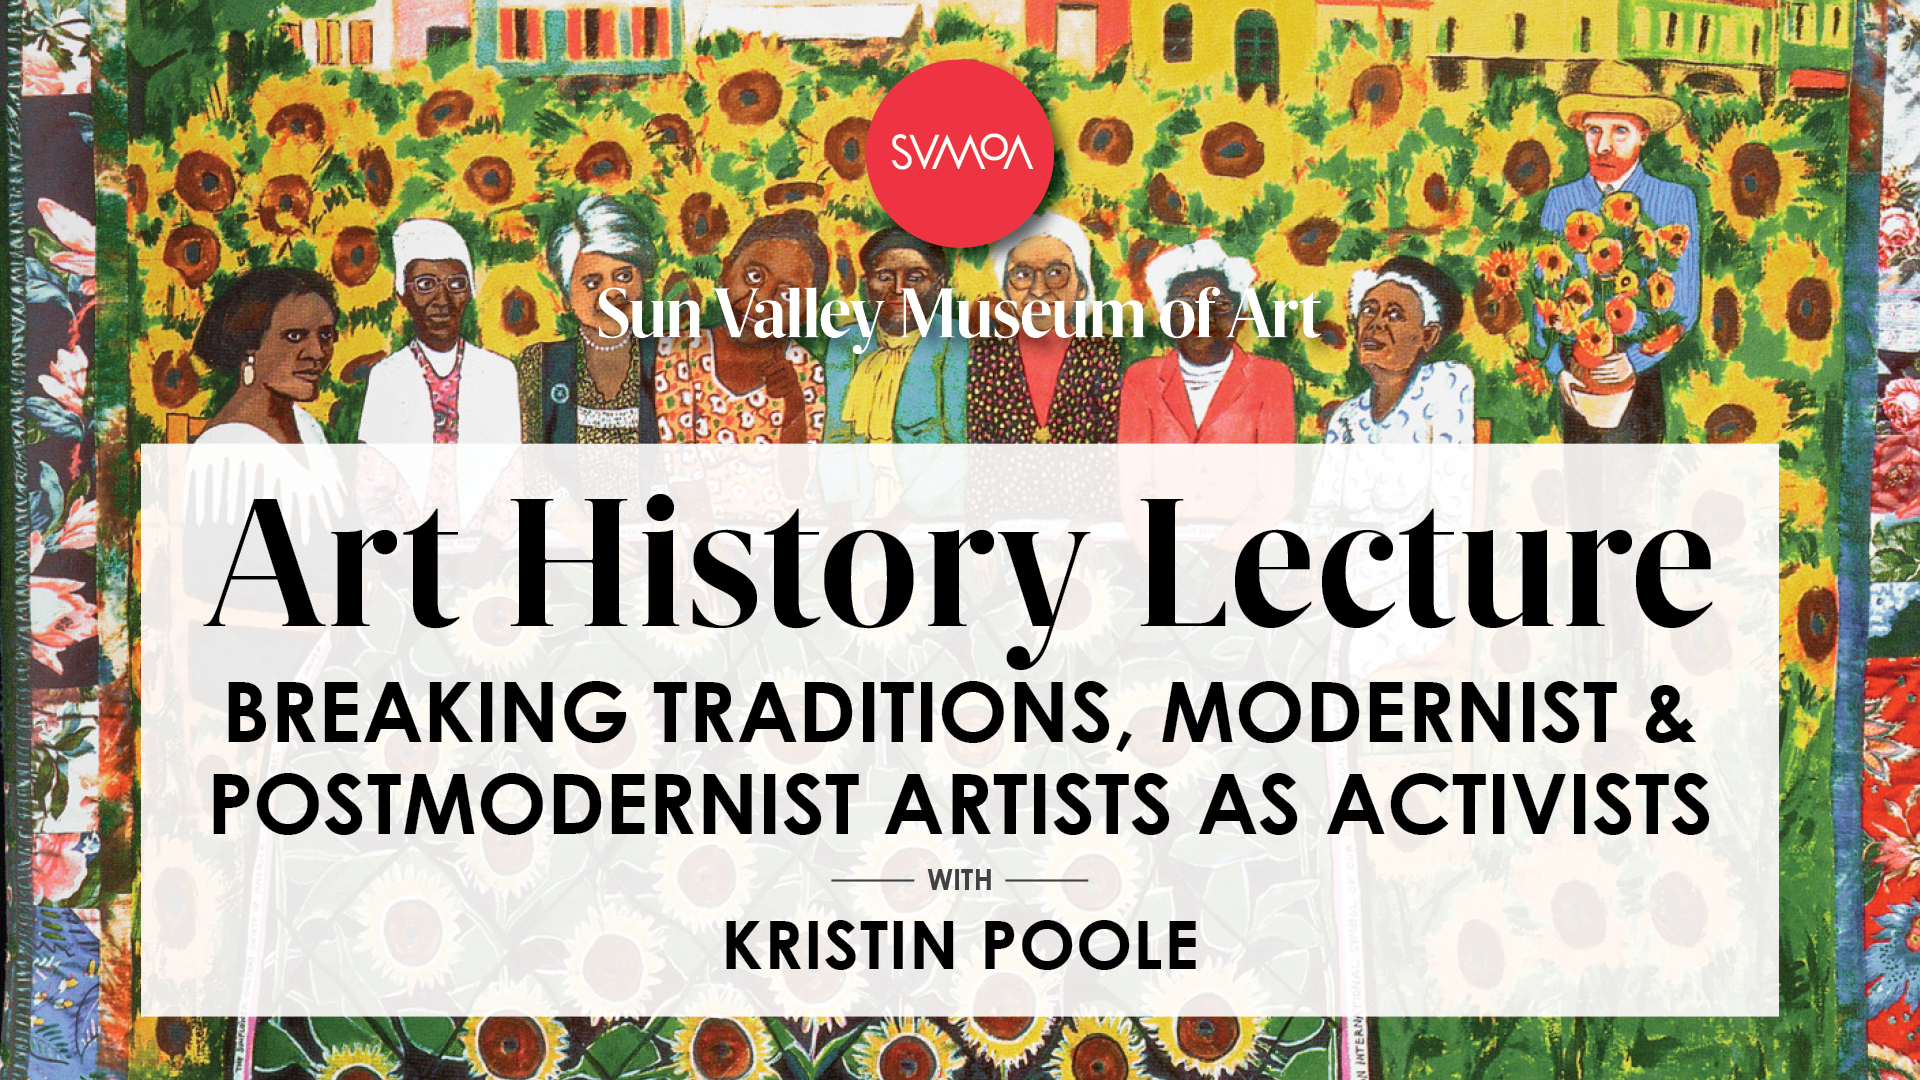 LIVESTREAM ART HISTORY LECTURE: Breaking Traditions, Modernist & Postmodernist Artists as Activists with Kristin Poole